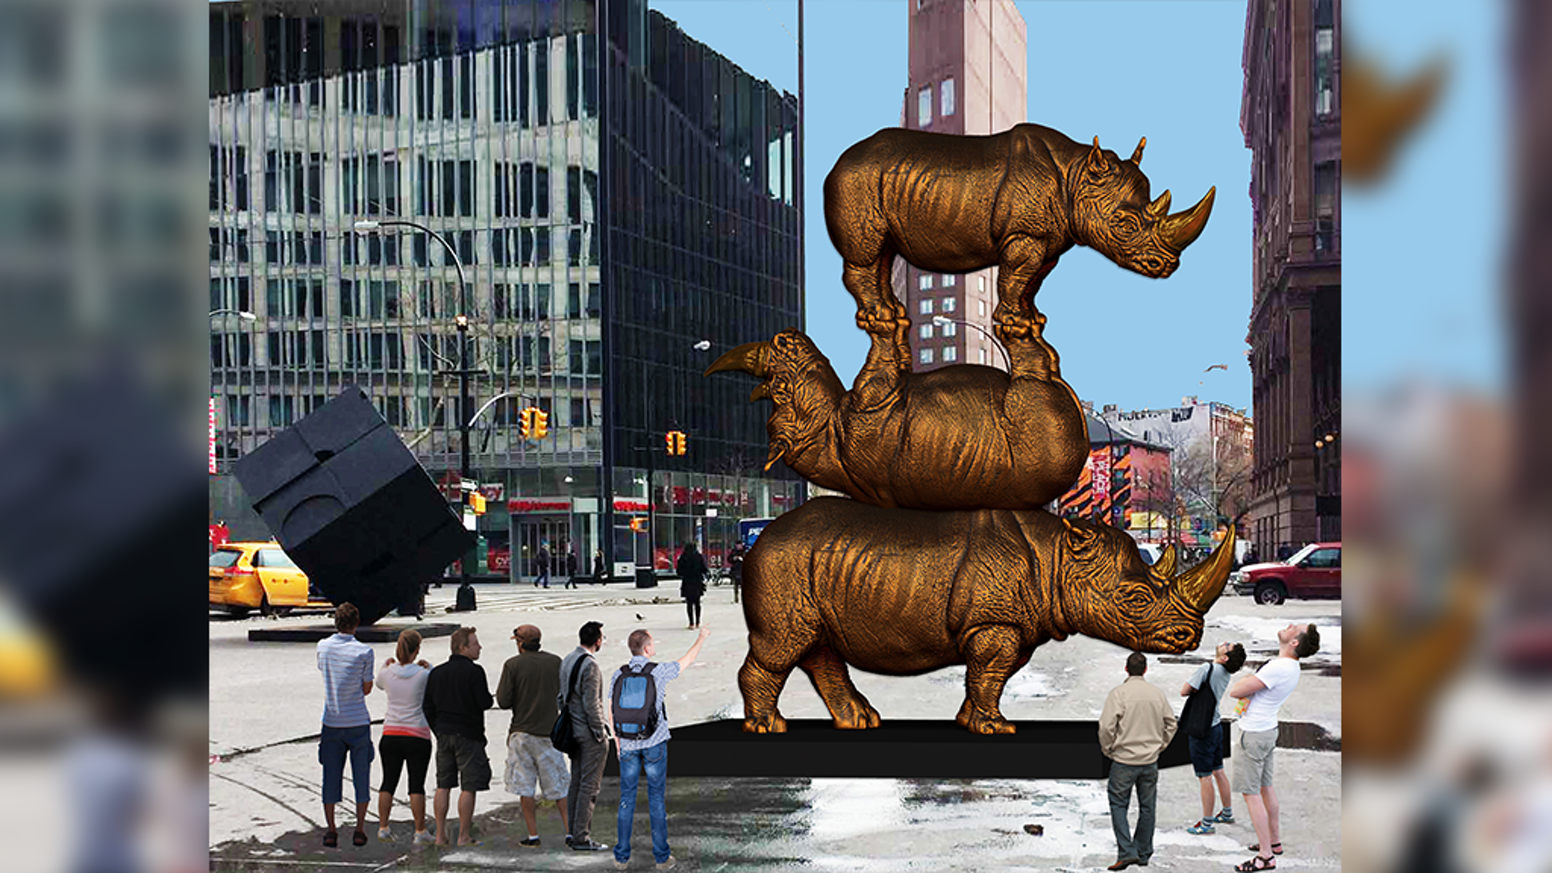 The world's biggest rhino sculpture to be installed in New York City